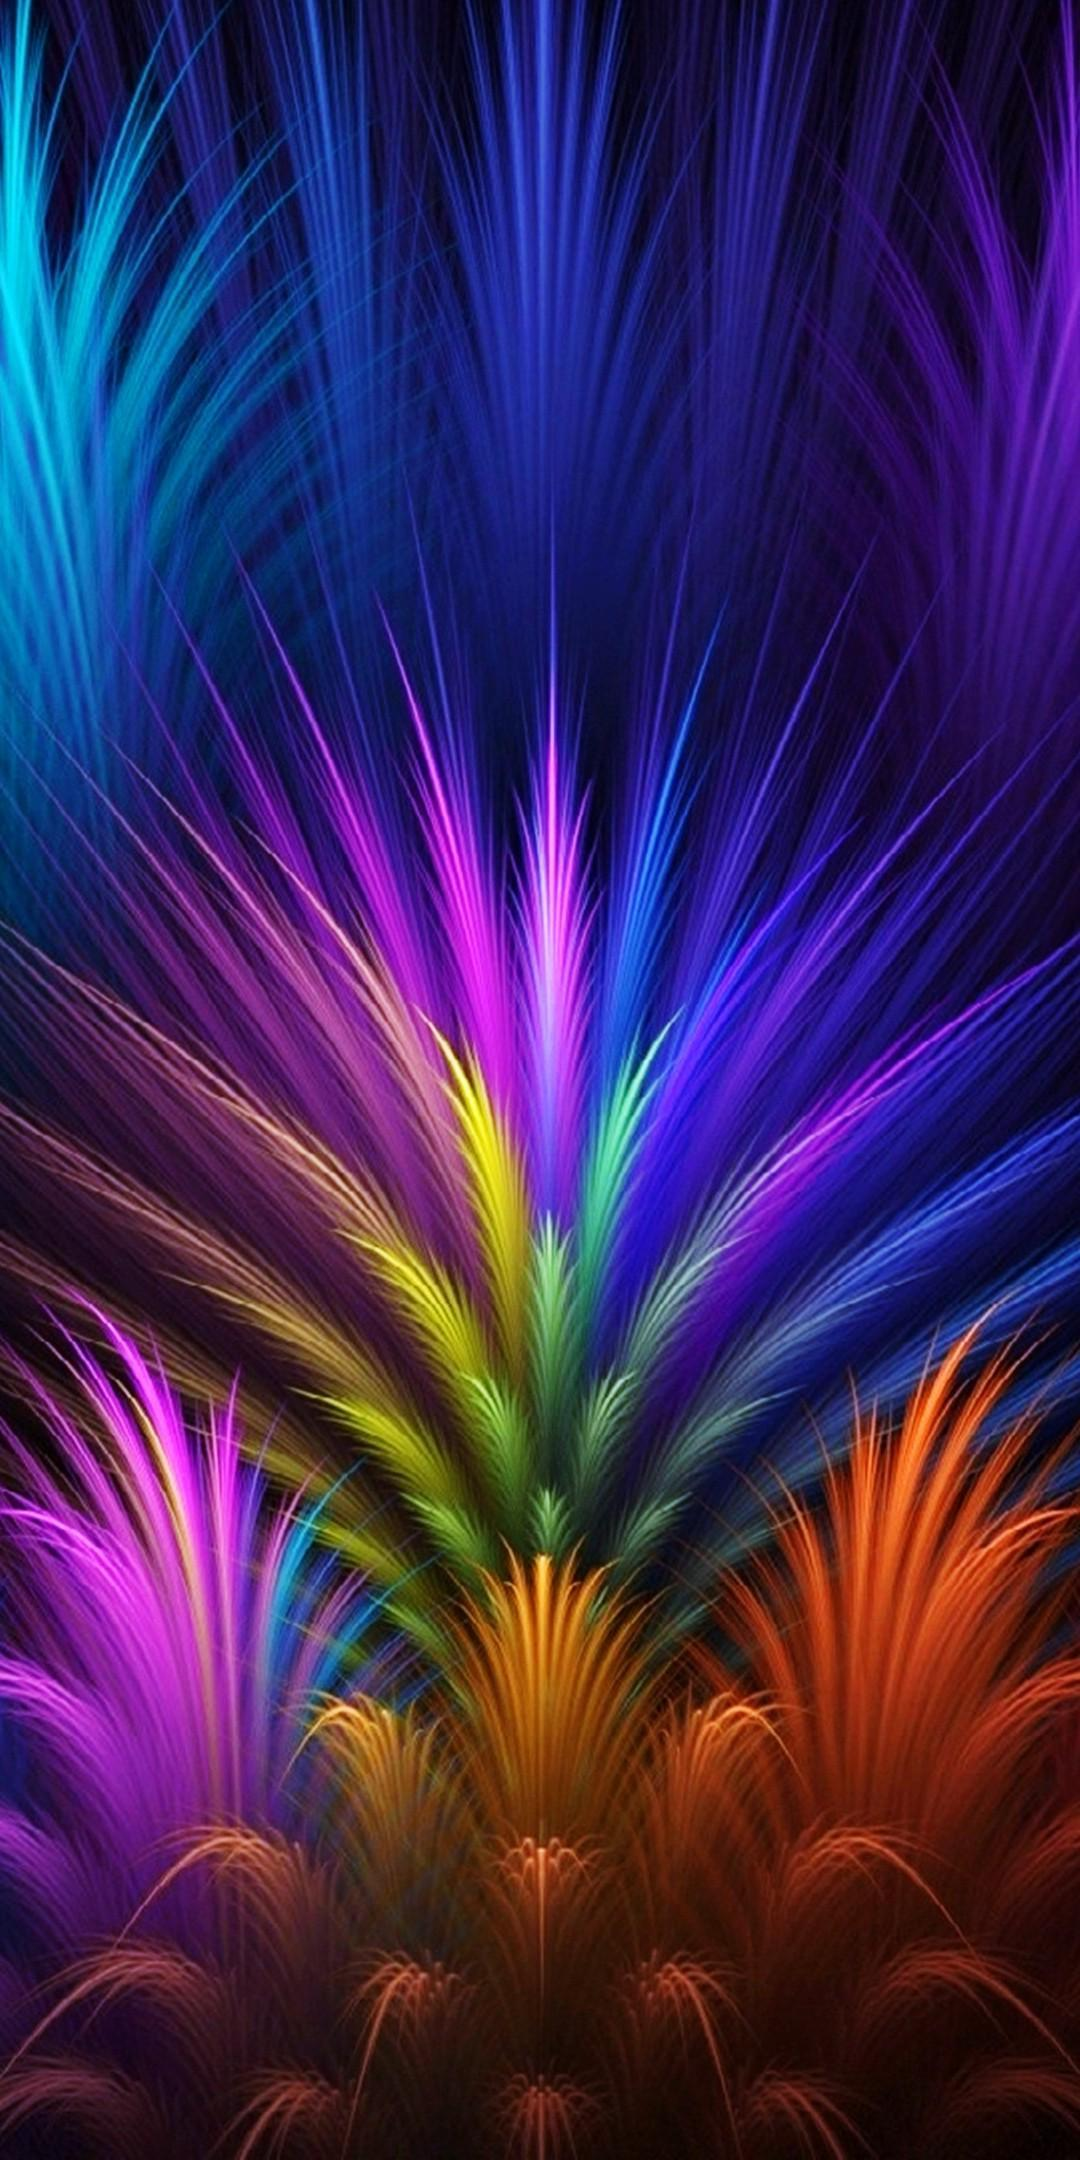 Huawei Mate 8 Mate 9 Mate 10 Wallpaper For Android Apk